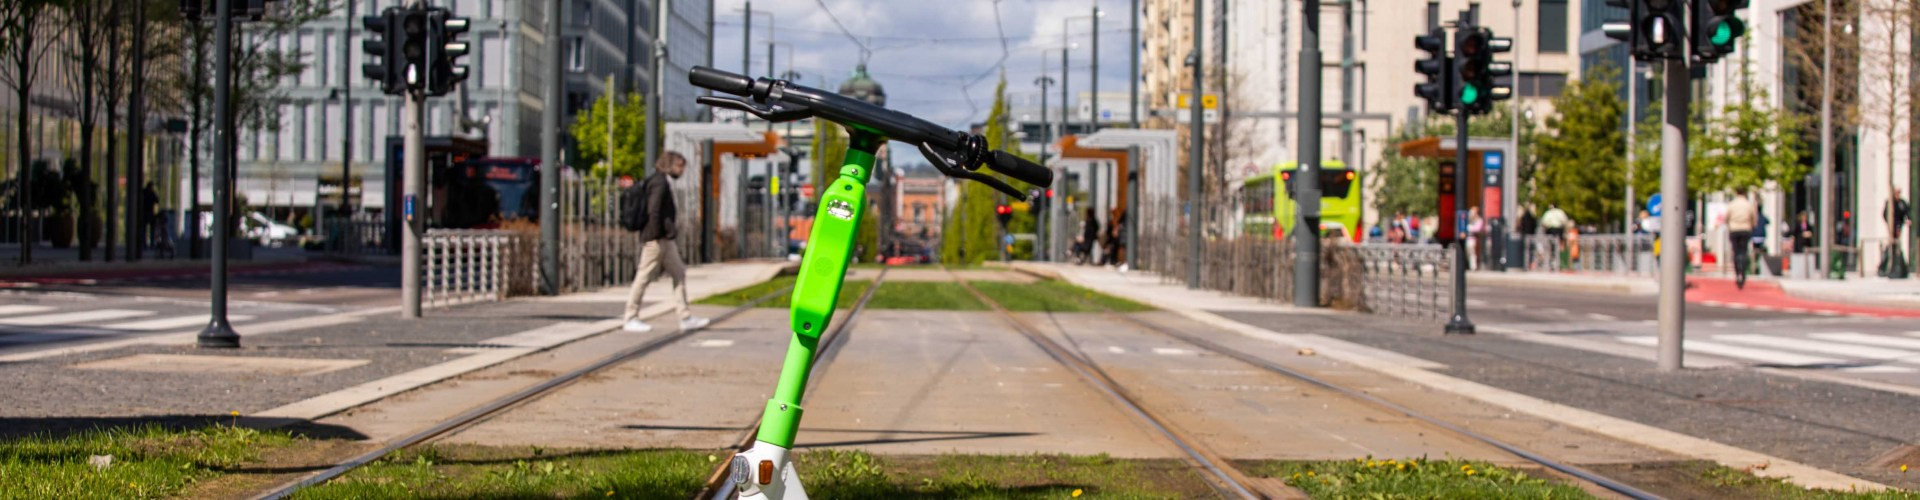 Swarco and Lime Partner to Improve Street Safety Conditions for Bike and Scooter Riders